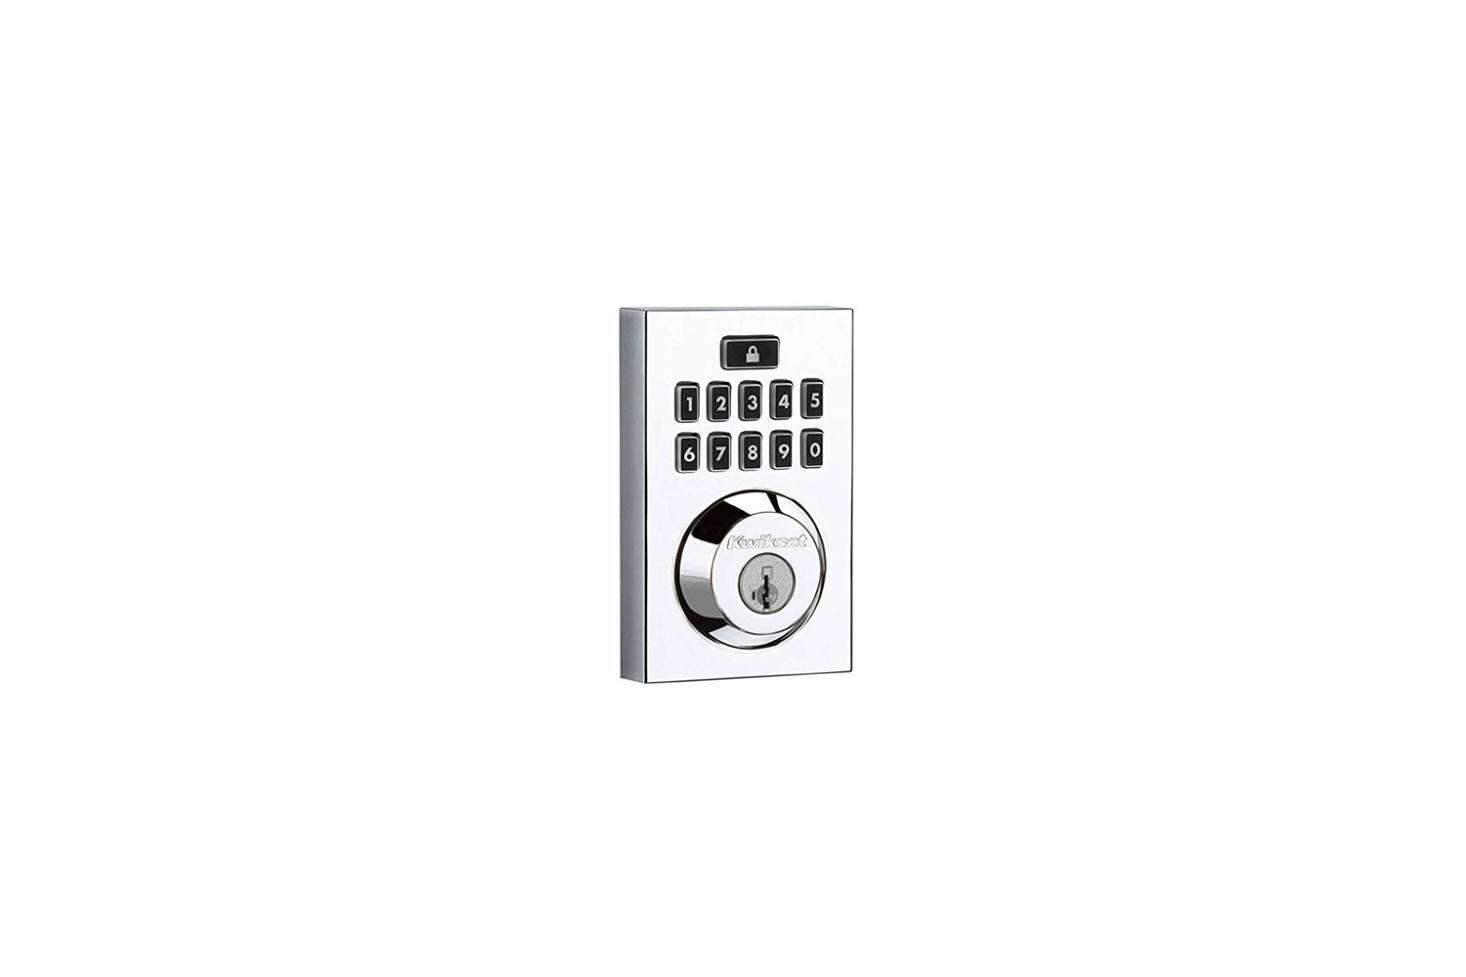 The Kwiset Smartcode 9 Contemporary Electronic Deadbolt Featuring Smartkey comes in Polished Chrome, Satin Nickel, or Venetian Bronze and can be programmed with up to  different user codes; $data-src=